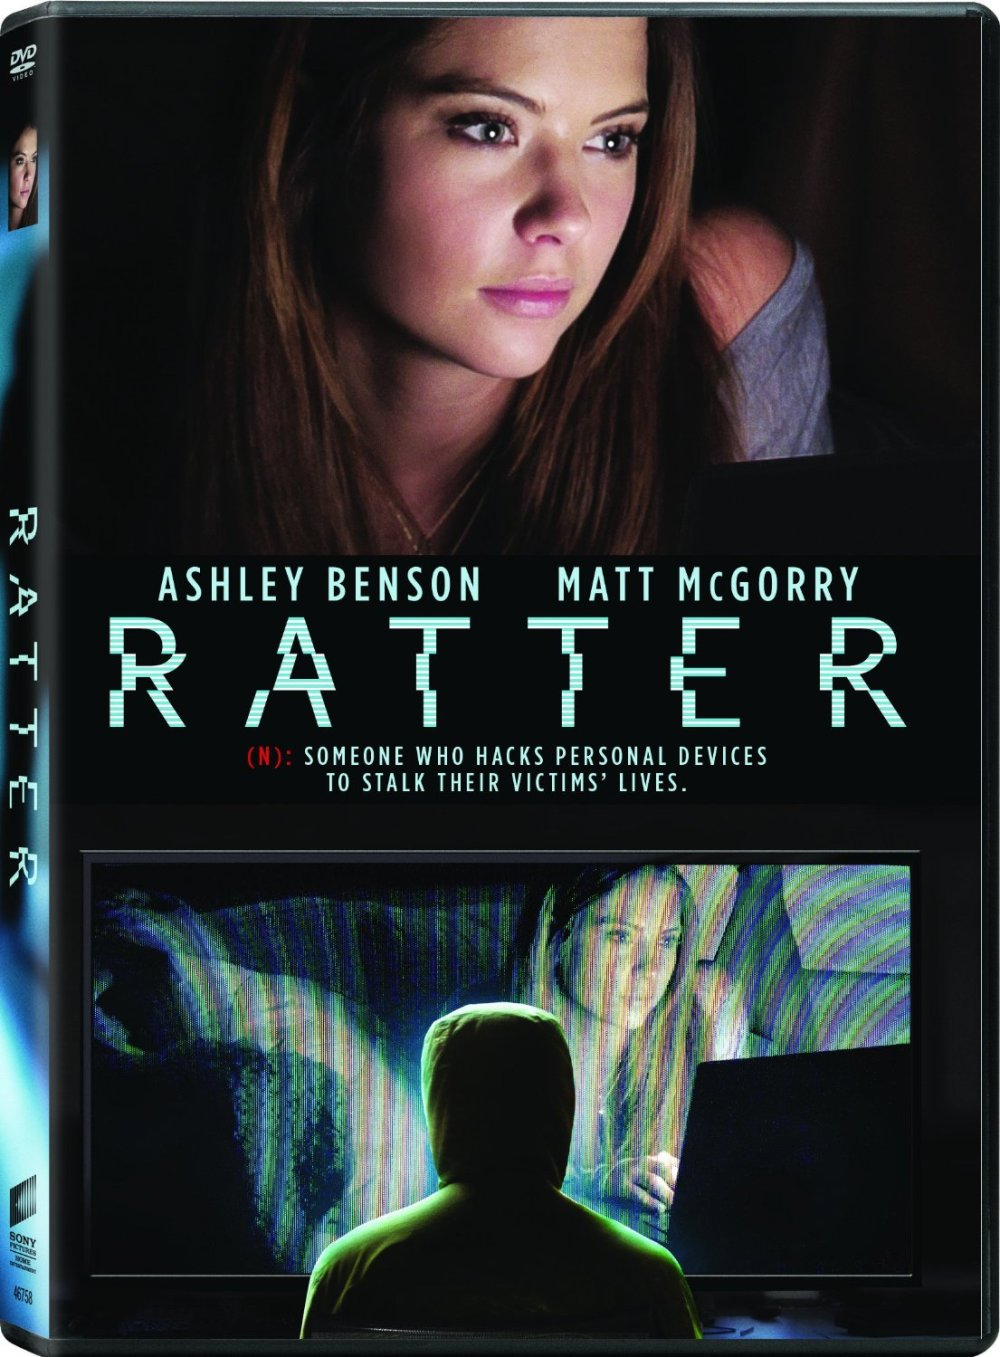 RATTER DVD cover art via Sony Home Entertainment